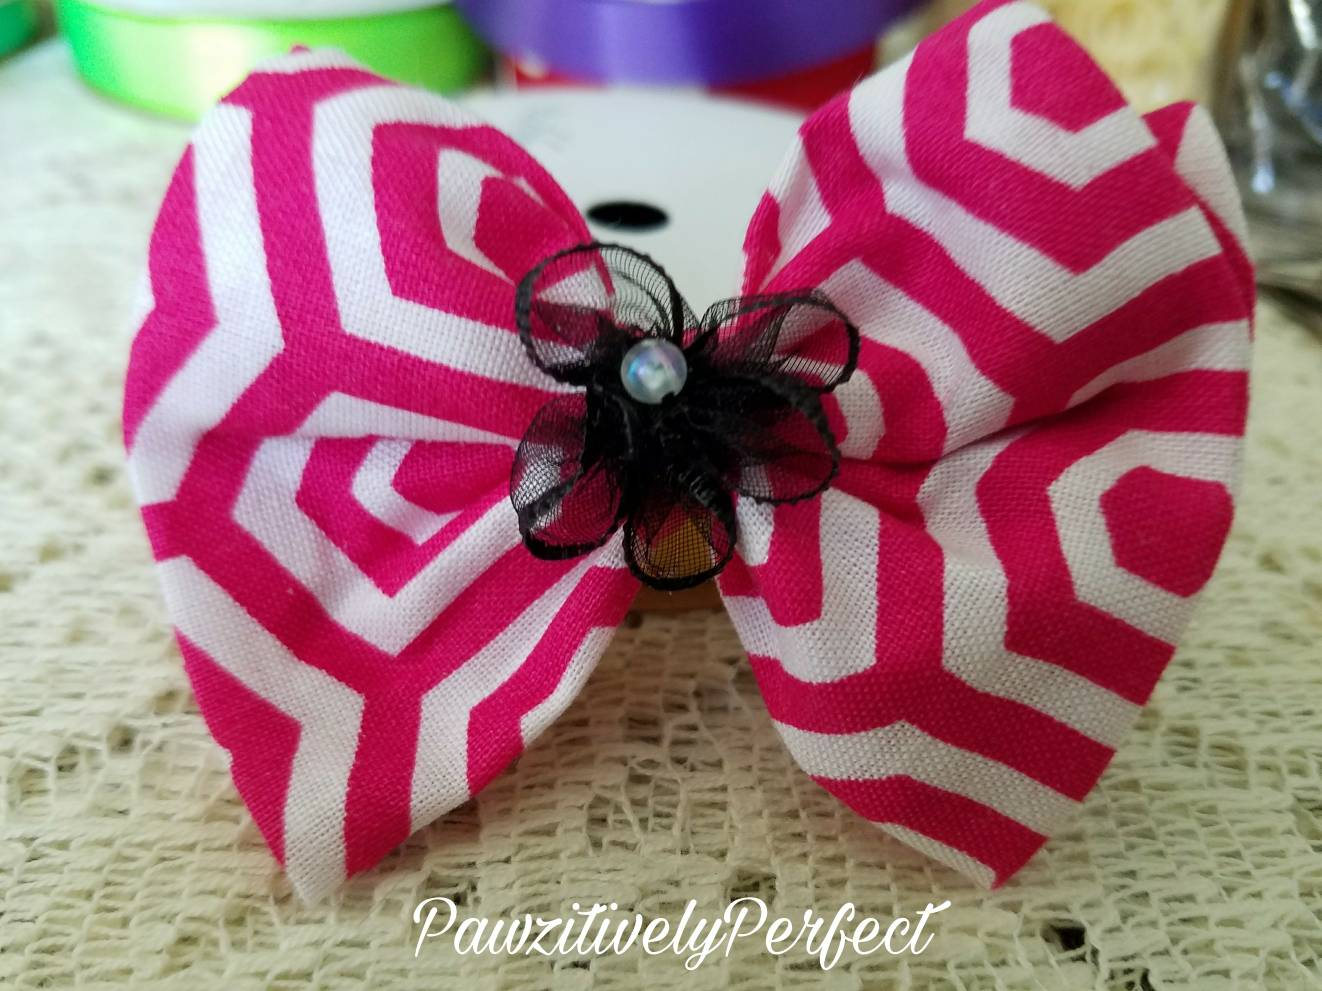 Pink And White Top Knot Hair Bow With Black Flower And Alligator Clip